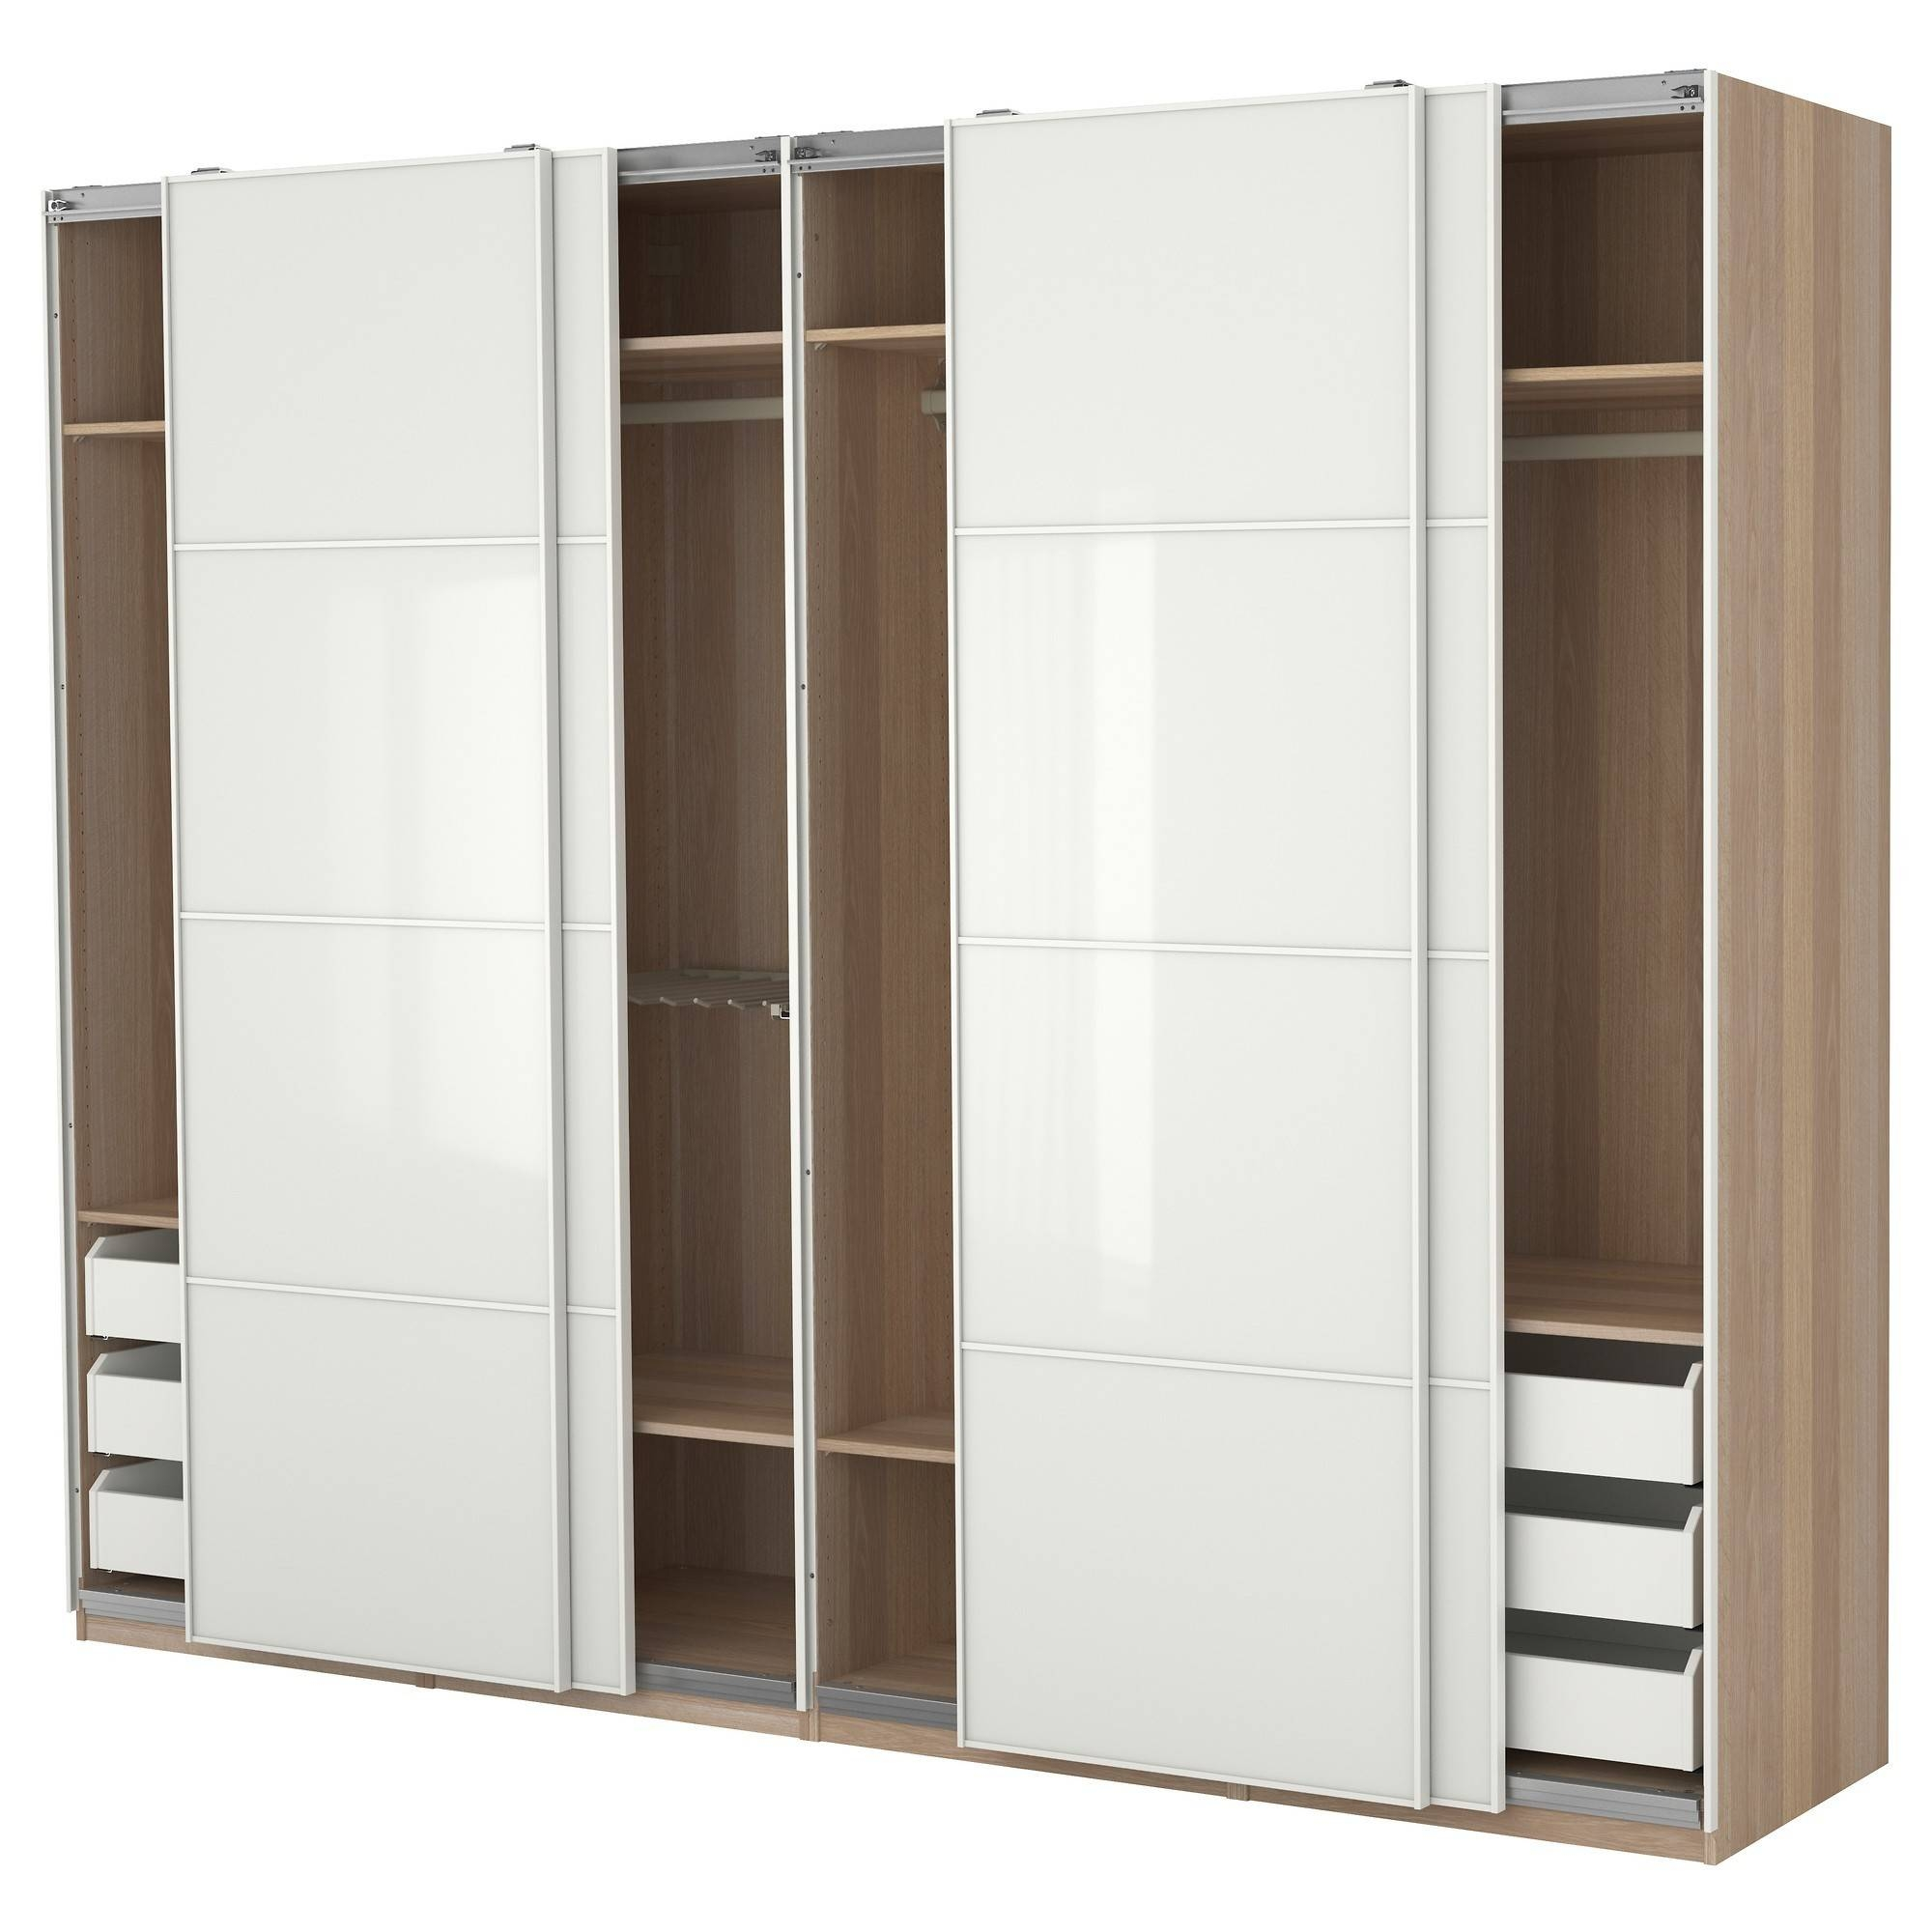 Furniture: Fancy Wardrobe Armoire For Wardrobe Organizer Idea for Large Black Wardrobes (Image 6 of 15)